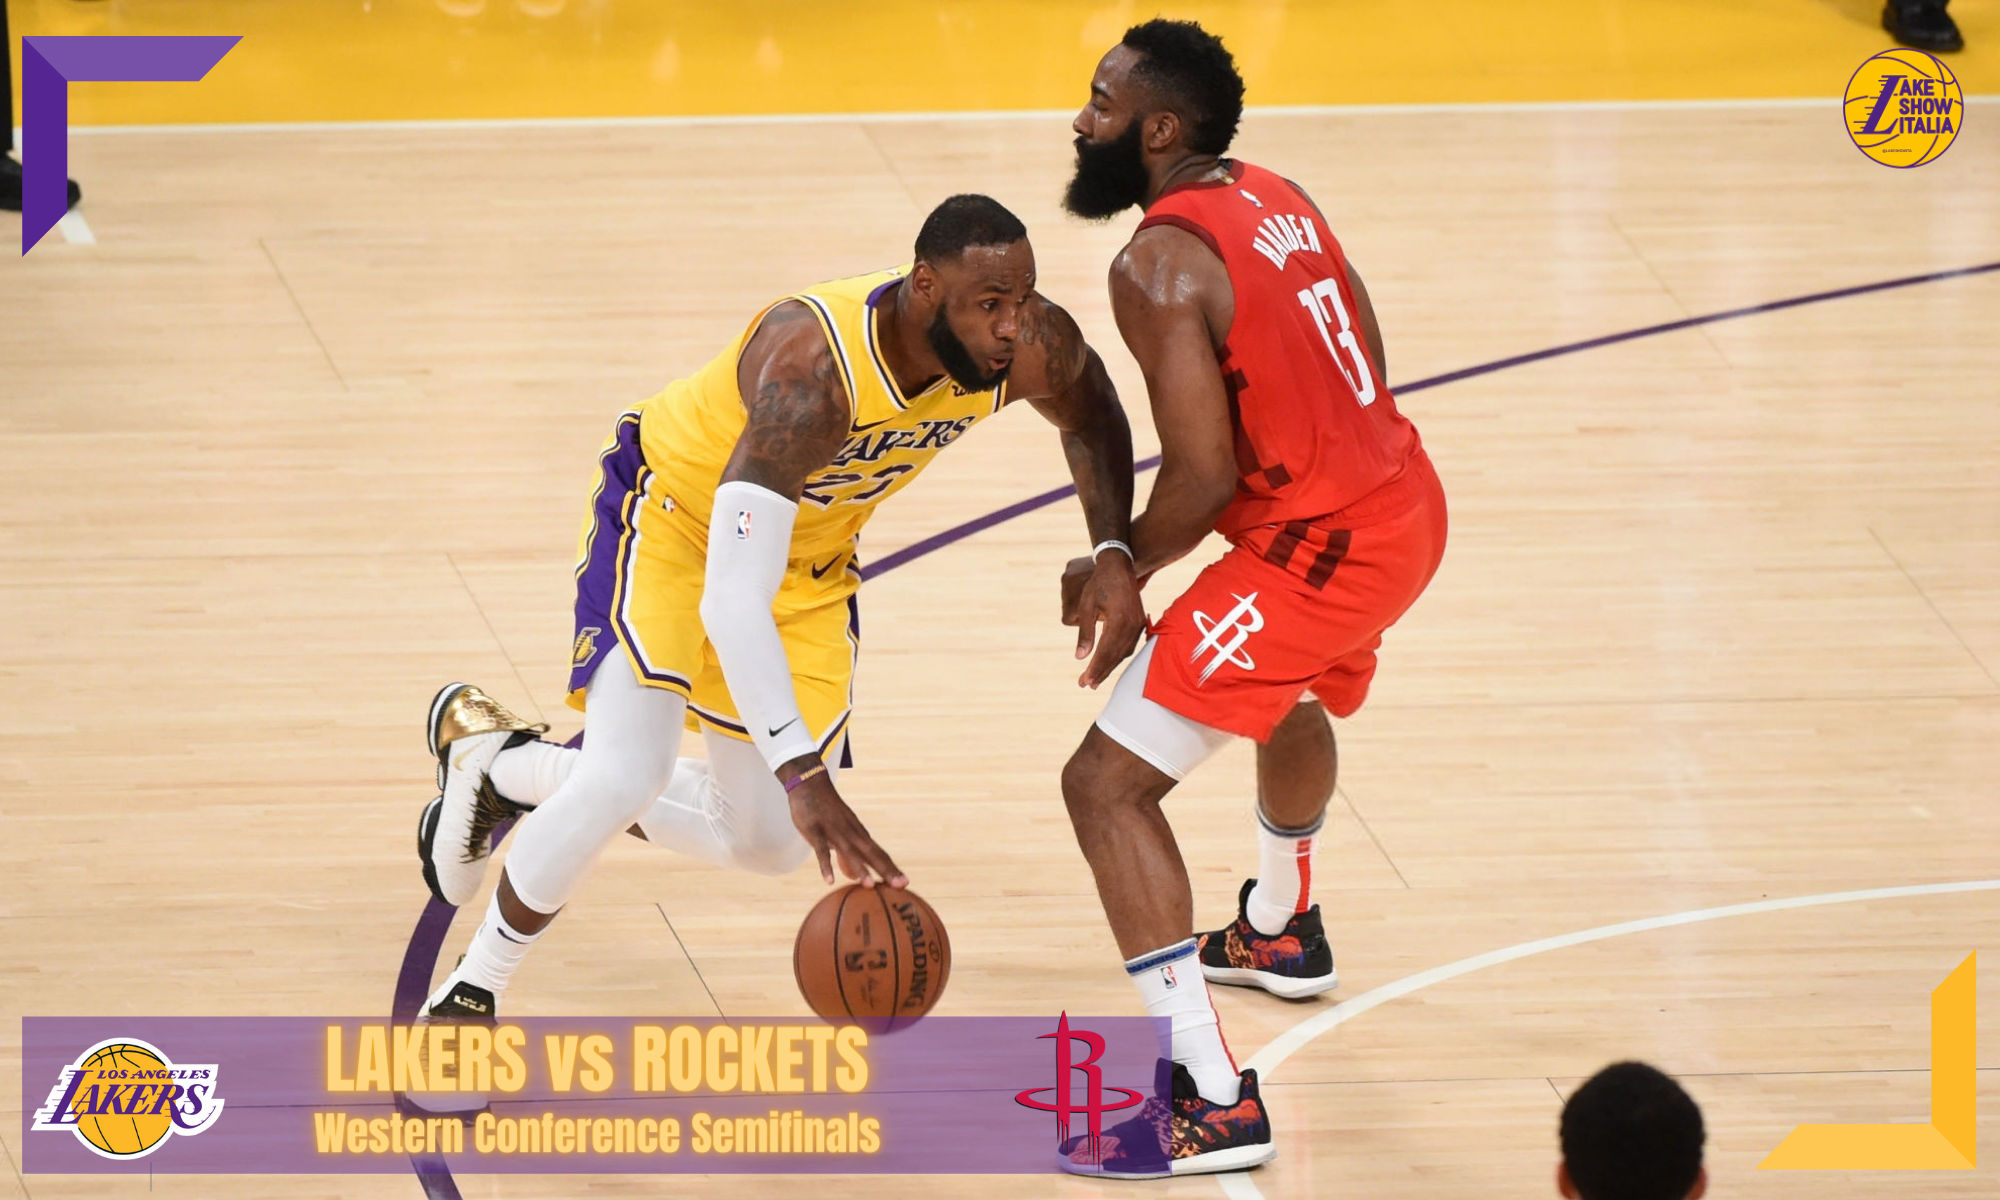 LeBron James #23 of the Los Angeles Lakers handles the ball against James Harden #13 of the Houston Rockets